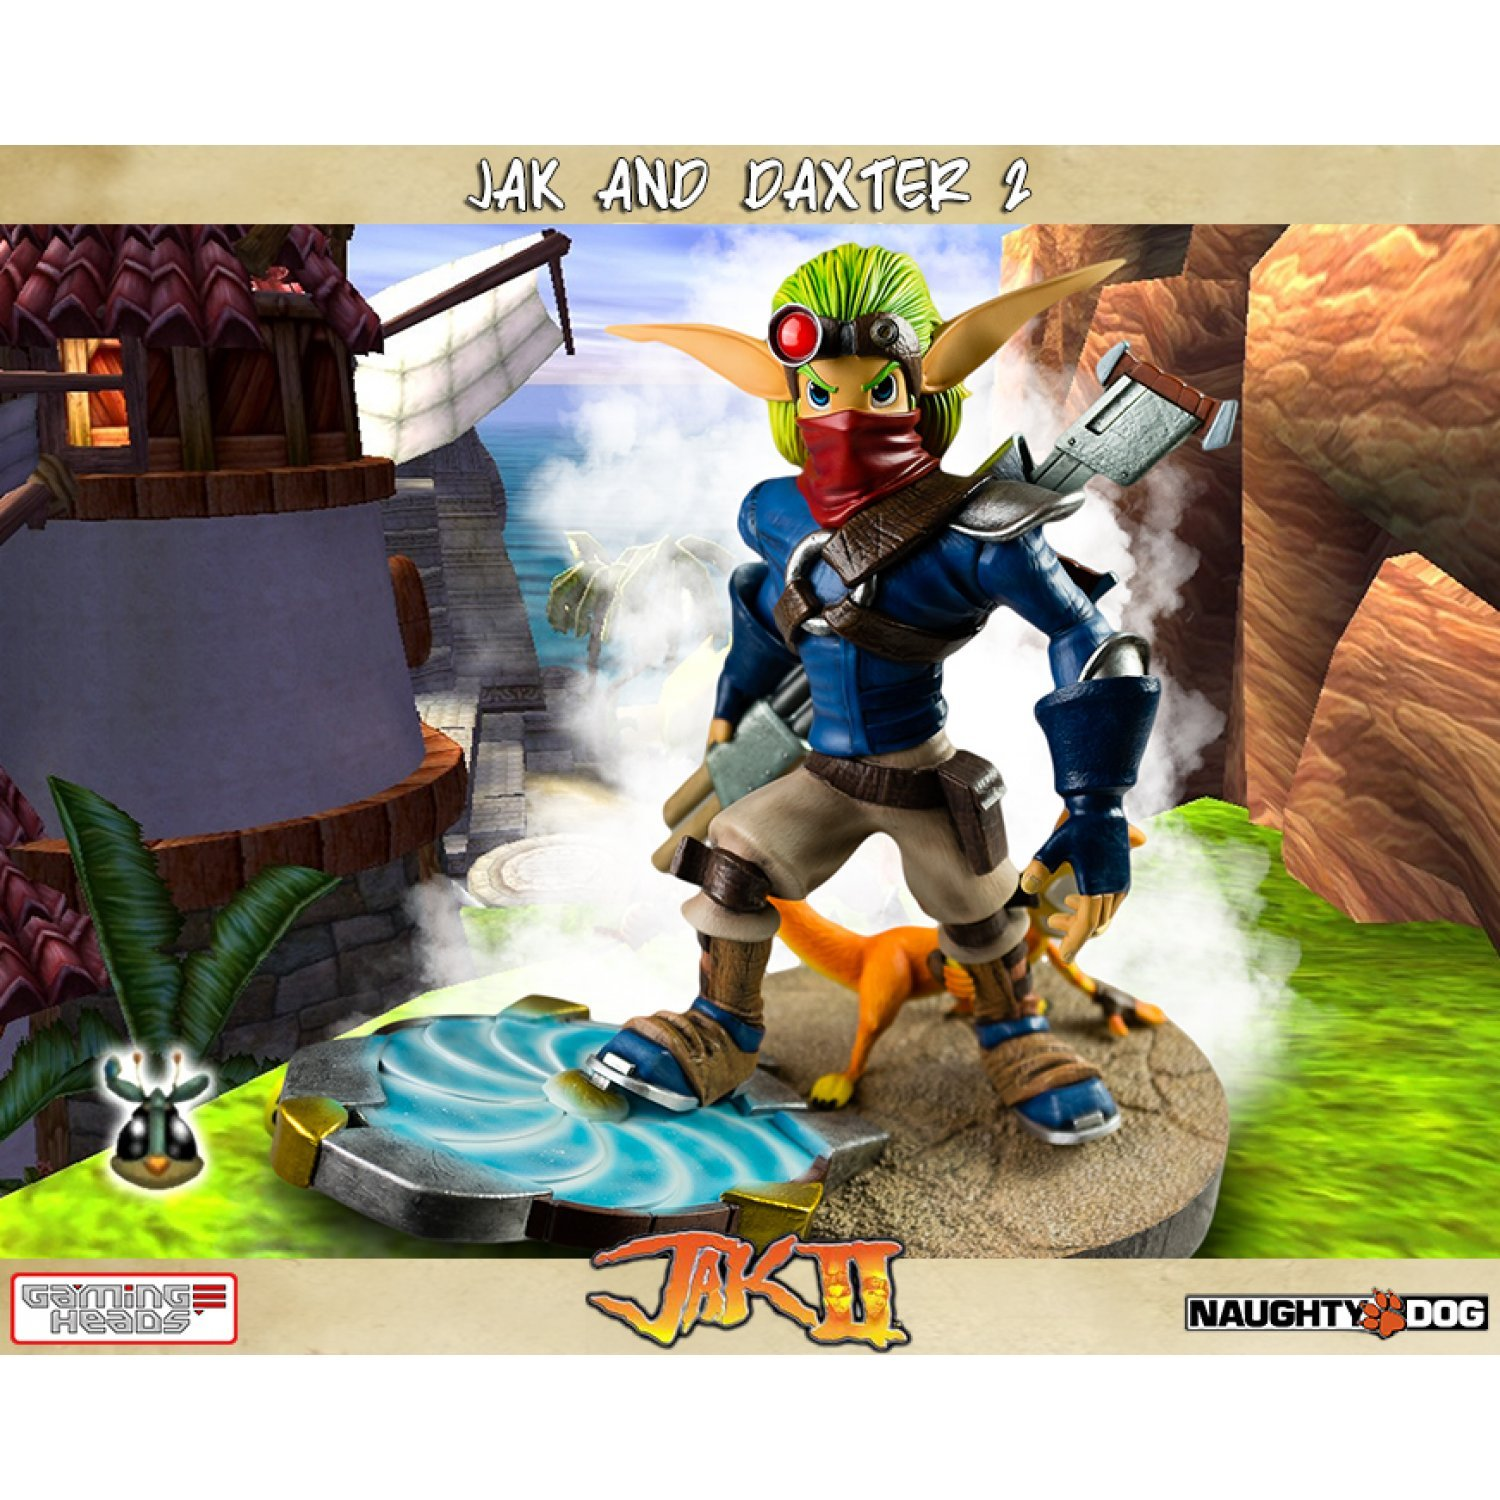 Jak And Daxter The Precursor Legacy: Jak And Daxter 2